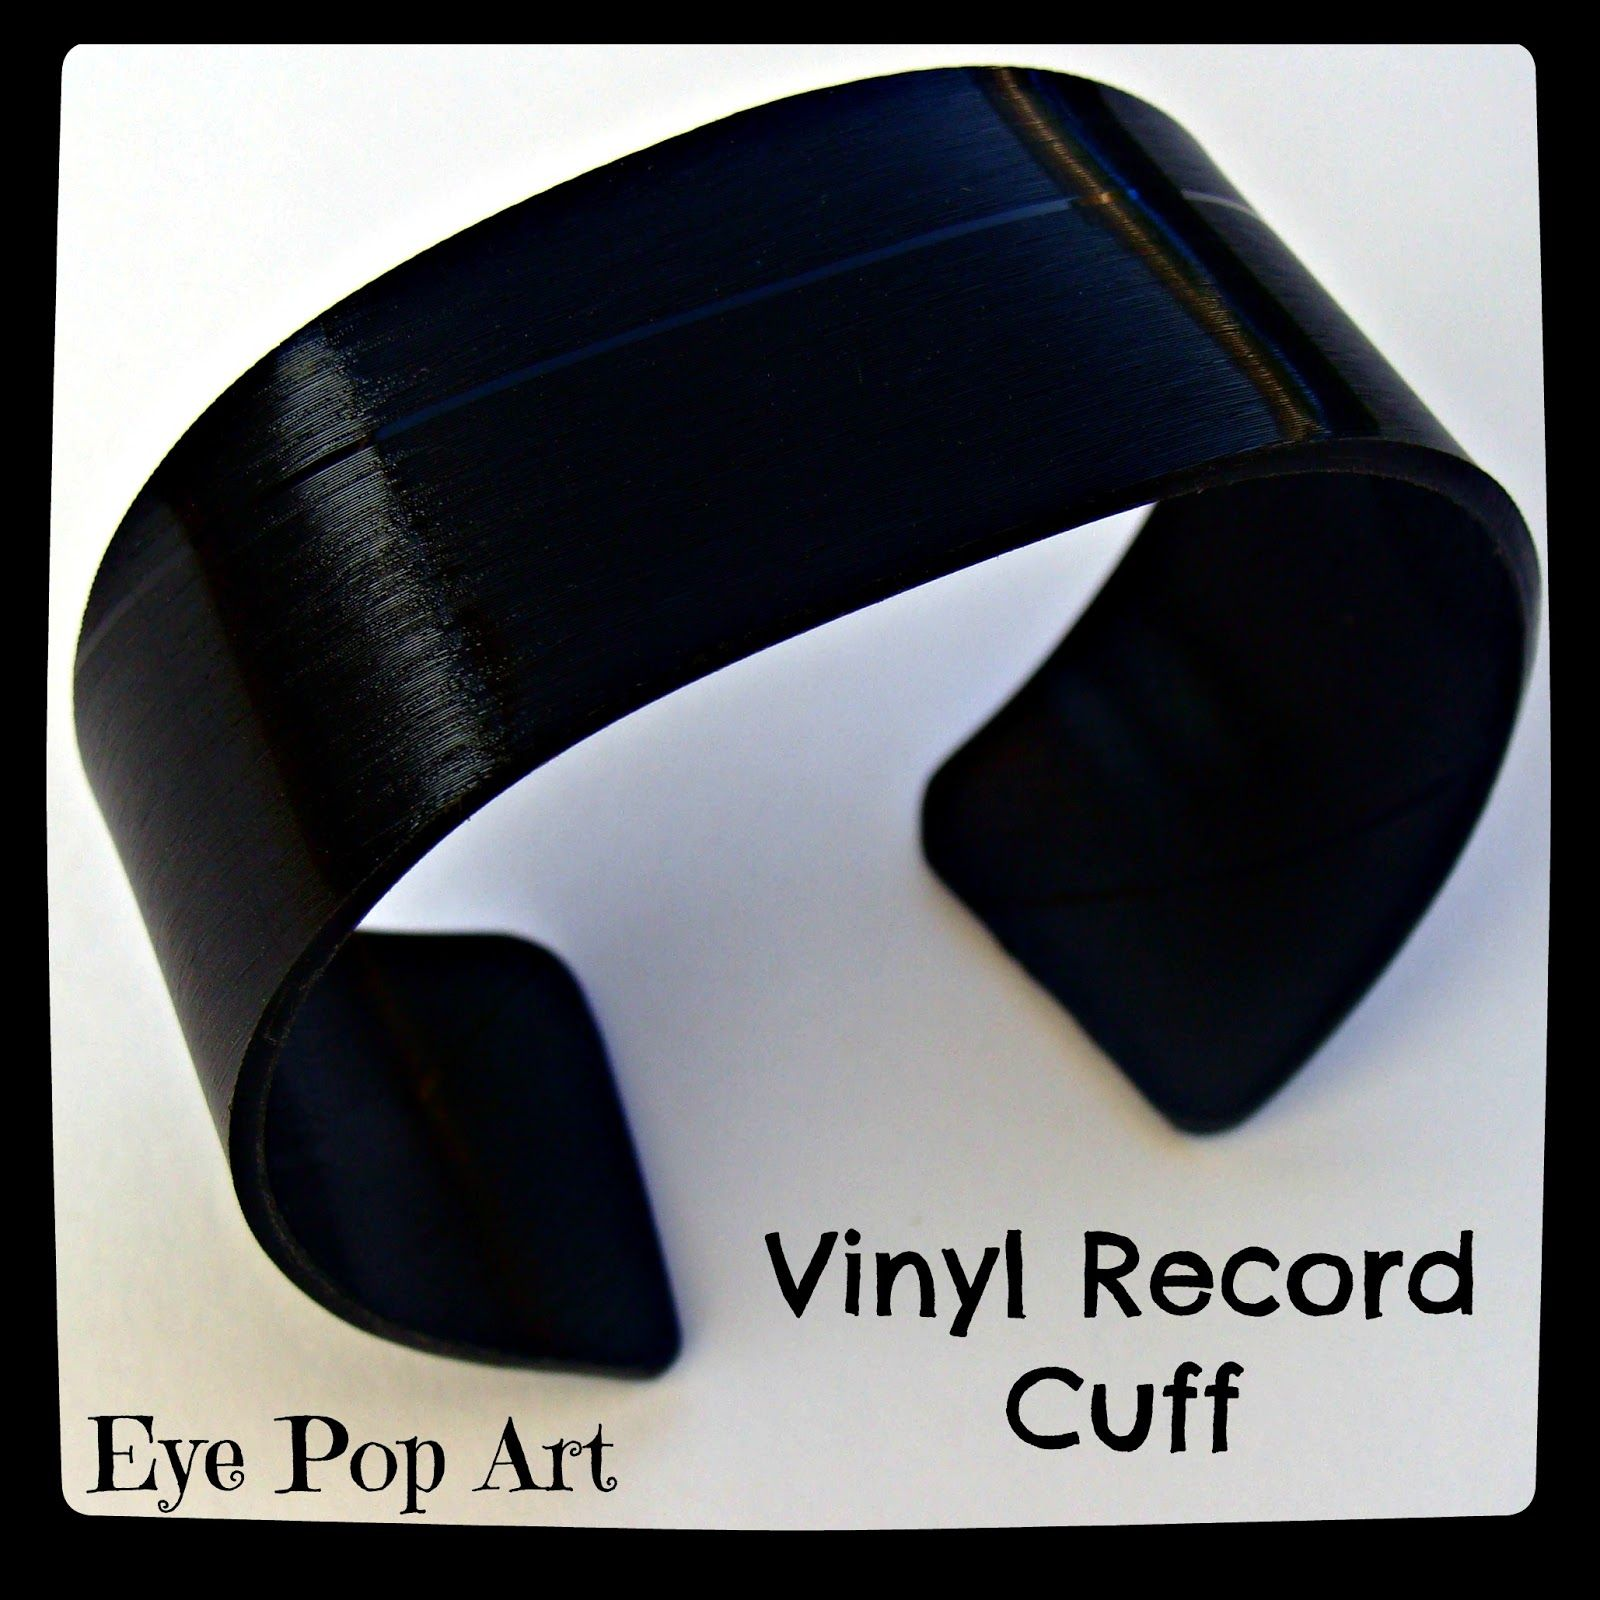 Eye Pop Art 10 Ways To Reuse Vinyl Records Vinyl Records Vinyl Record Art Vinyl